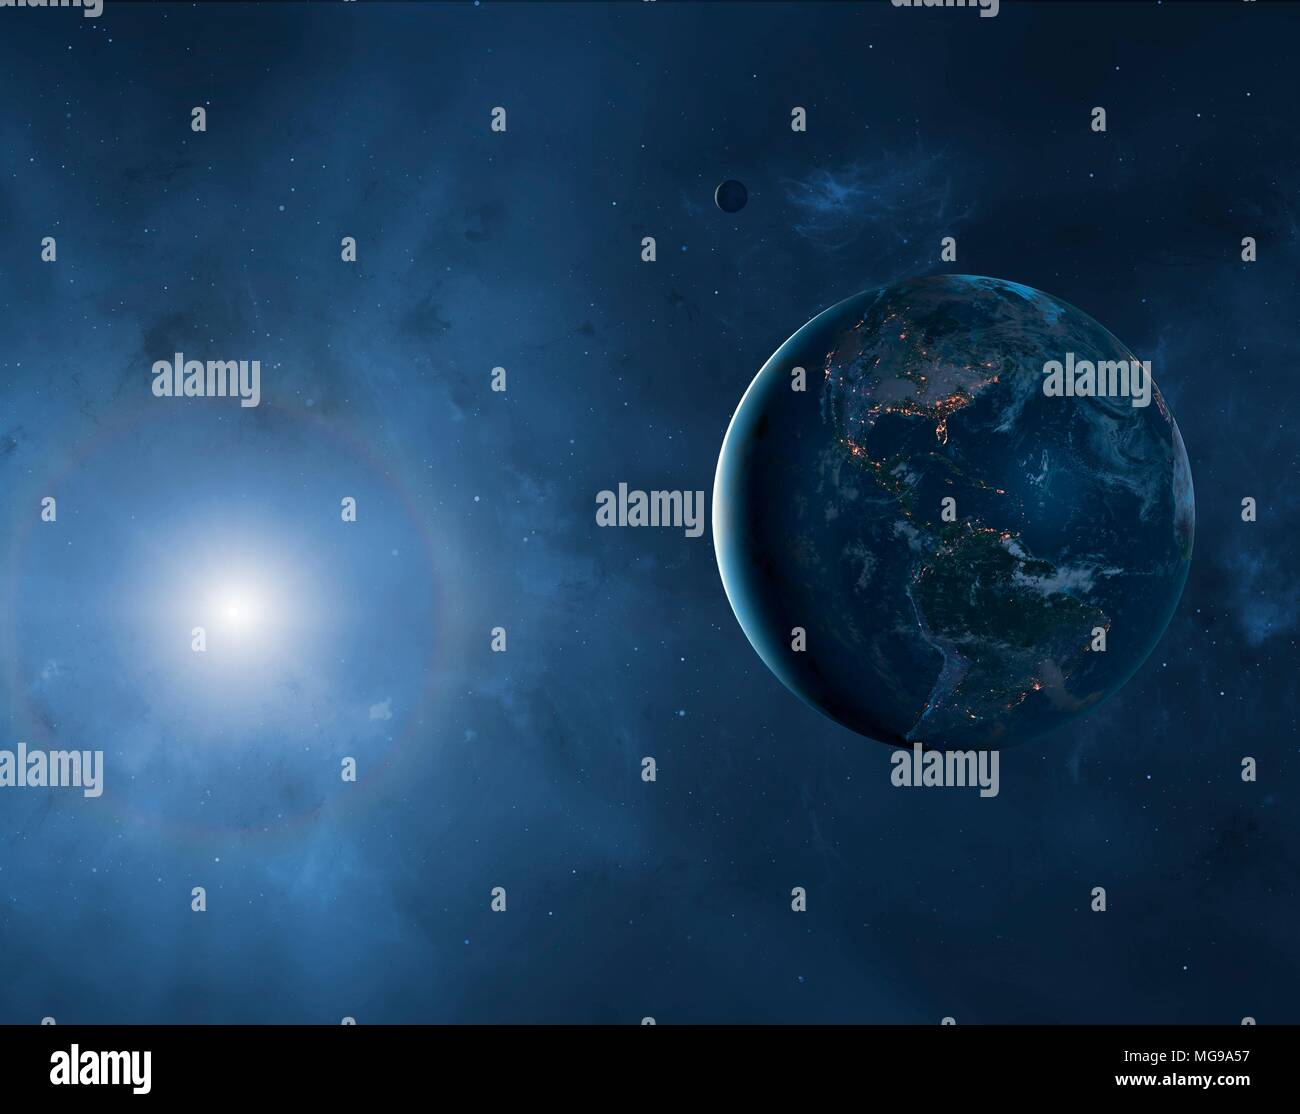 Illustration of the Earth and Moon showing a large proportion of the planet in darkness. Cities are seen glistening, defining the edges of the continents. This view shows North and South America. - Stock Image